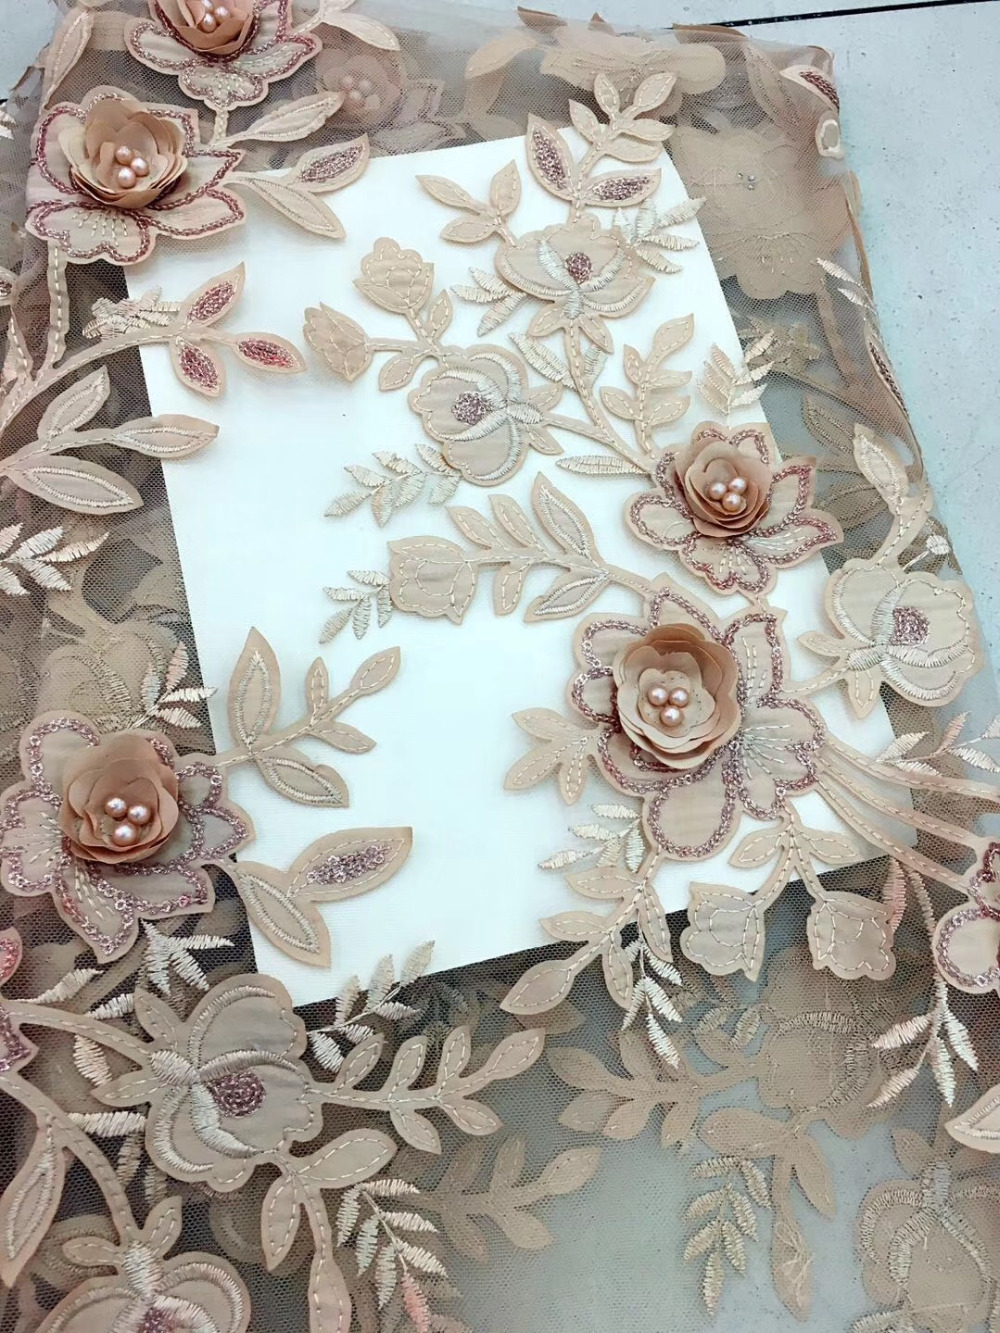 High Quality Lace Fabric Apliques Bridal Lace,Latest Bead Sequins French Lace Fabric In 7 Color,3D Flower Lace Wedding Dresses